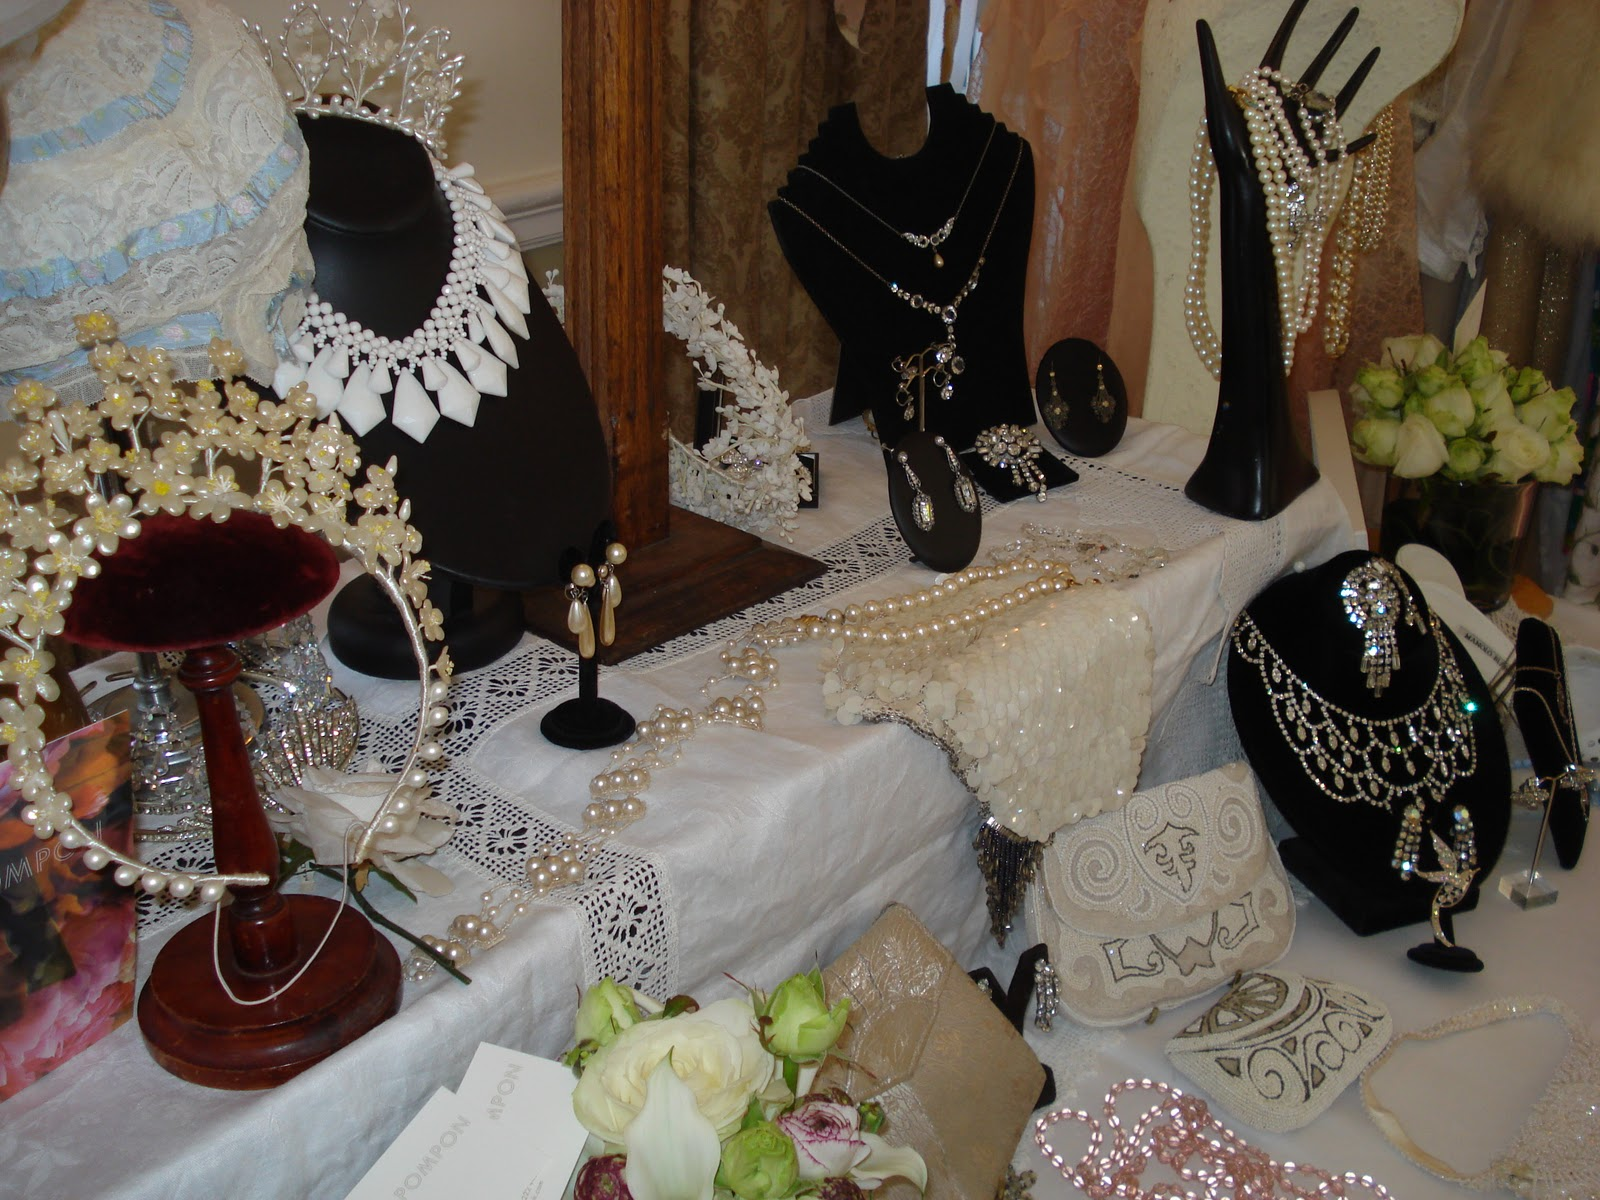 West Weddings: An Afternoon At The Bristol Vintage Fair